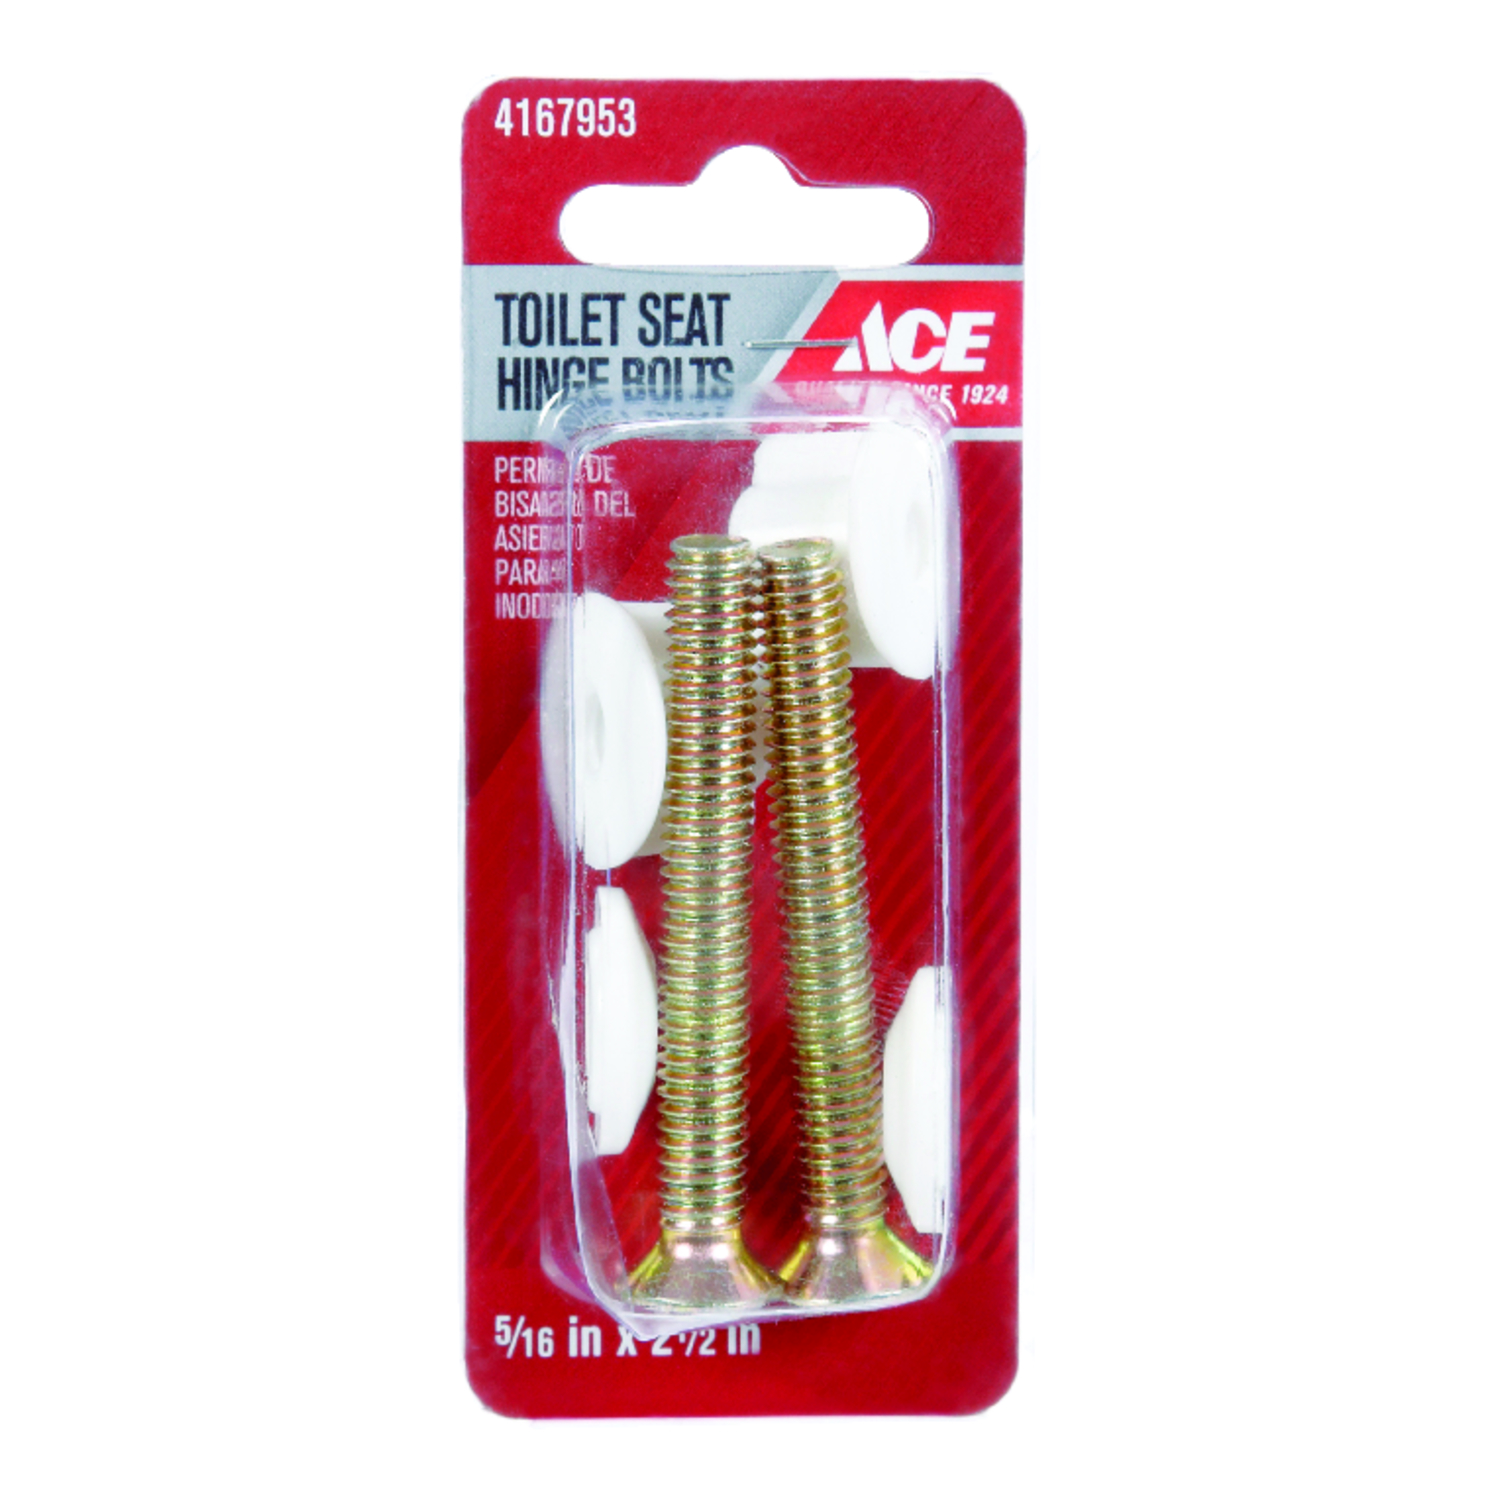 Ace  Toilet Seat Hinge Bolts  5/16 in. H x 2-1/2 in. L